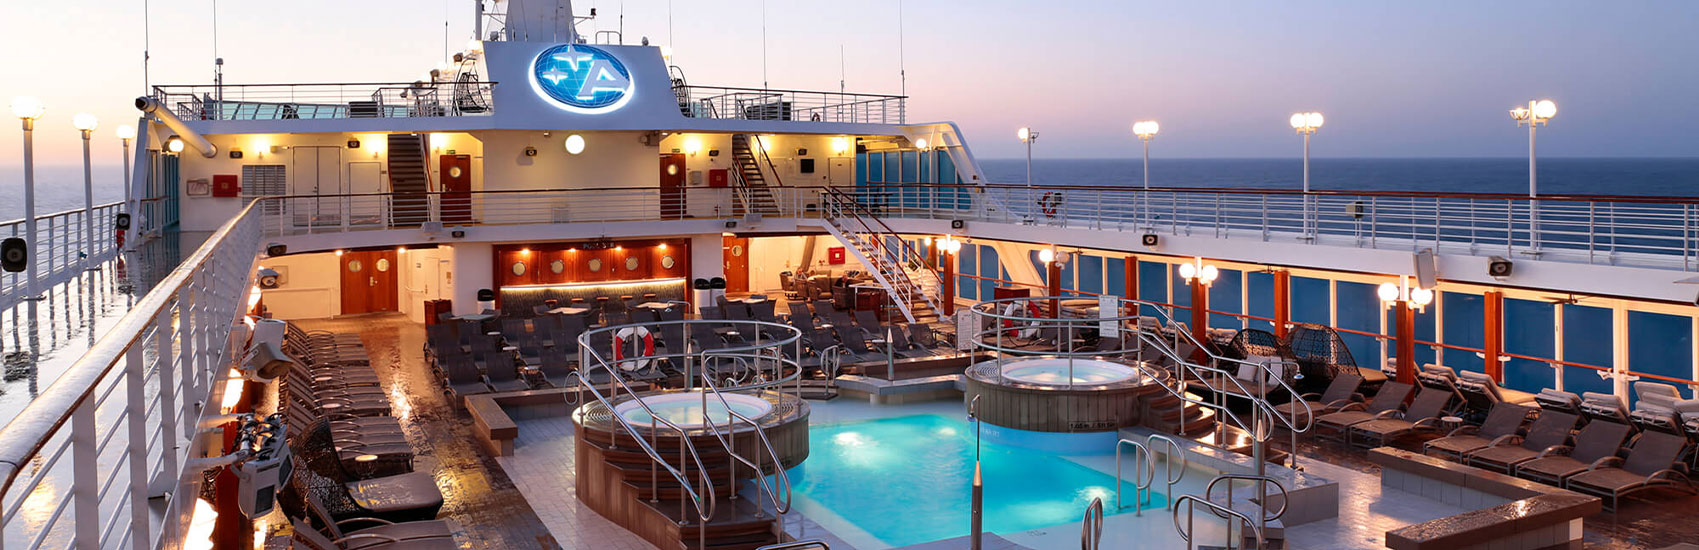 Sail Into Savings with Azamara 1